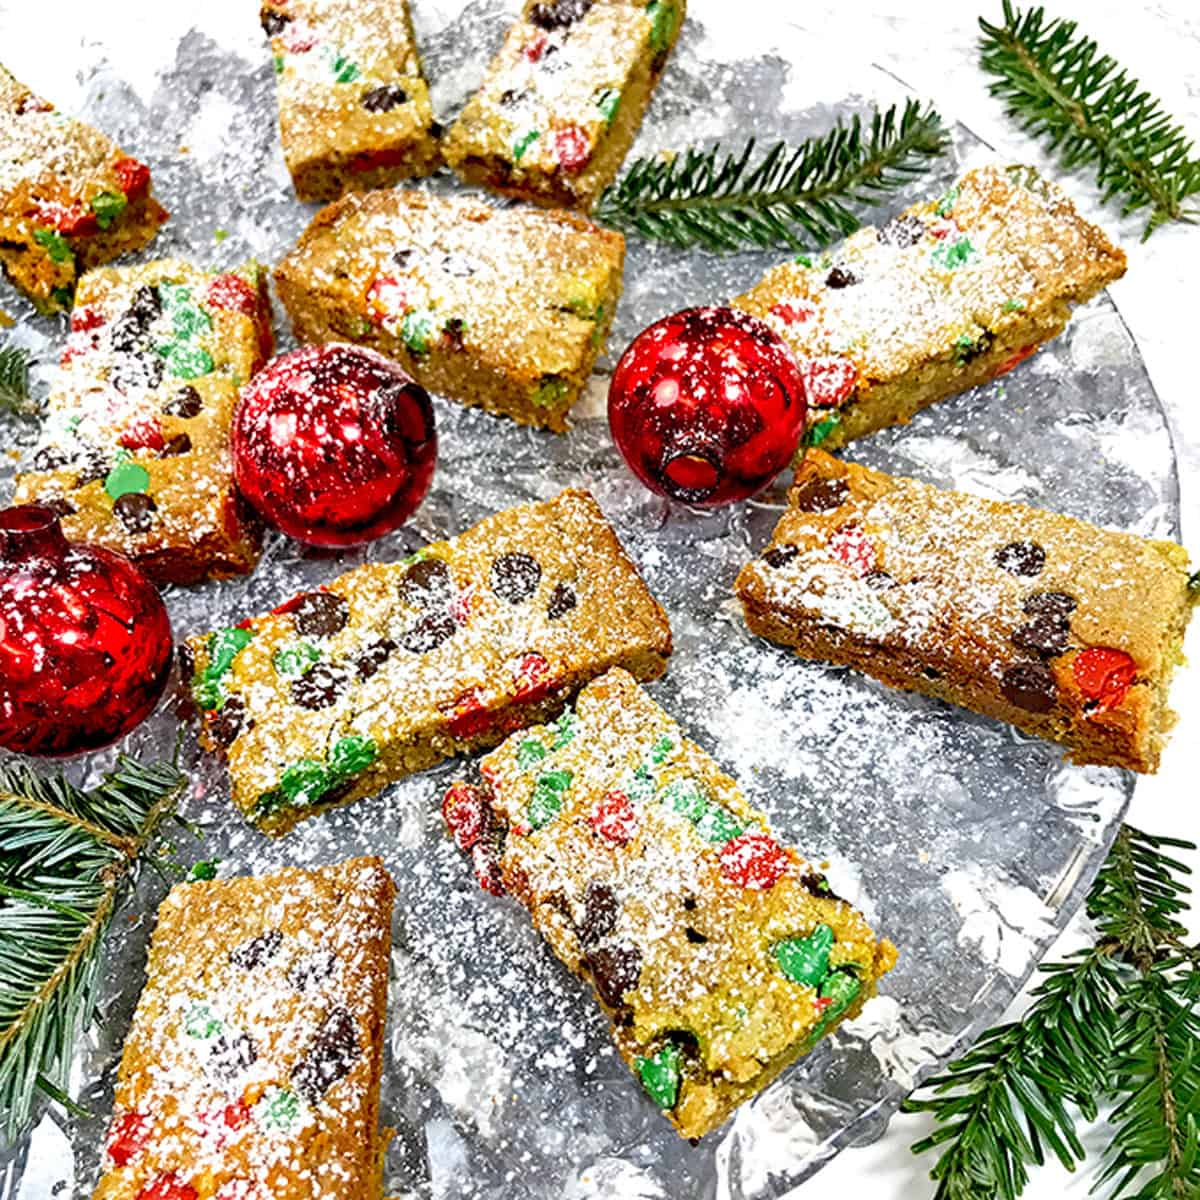 A festive plate of Christmas cookie bars with red ornaments.